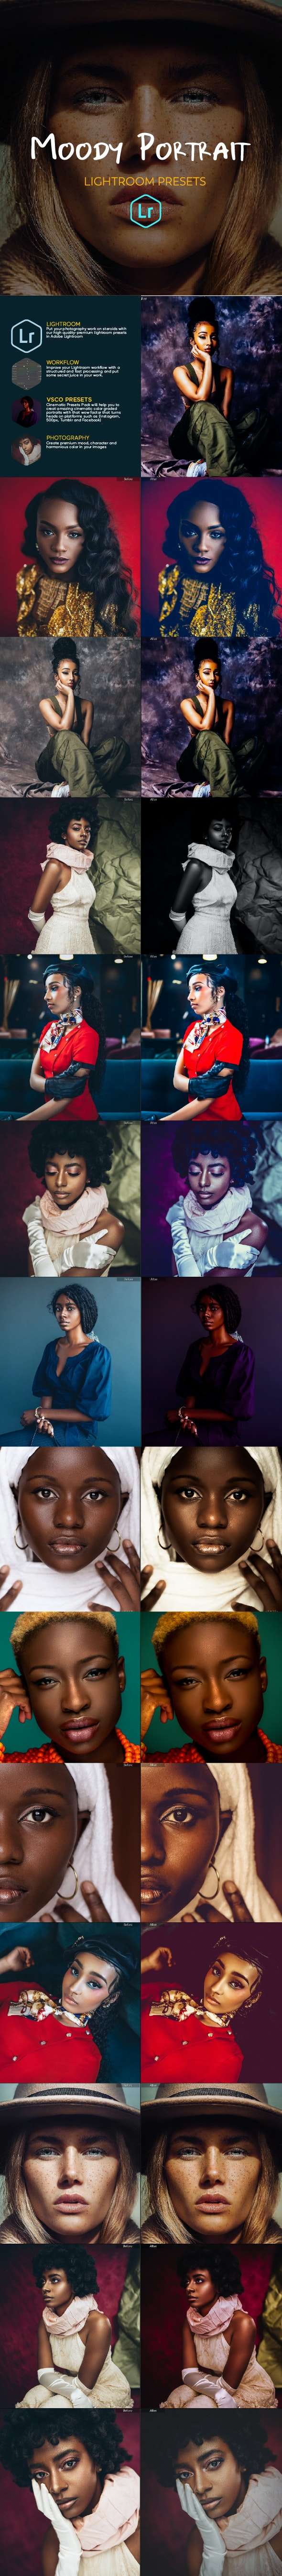 21 Moody Portrait Lightroom Presets - Portrait Lightroom Presets